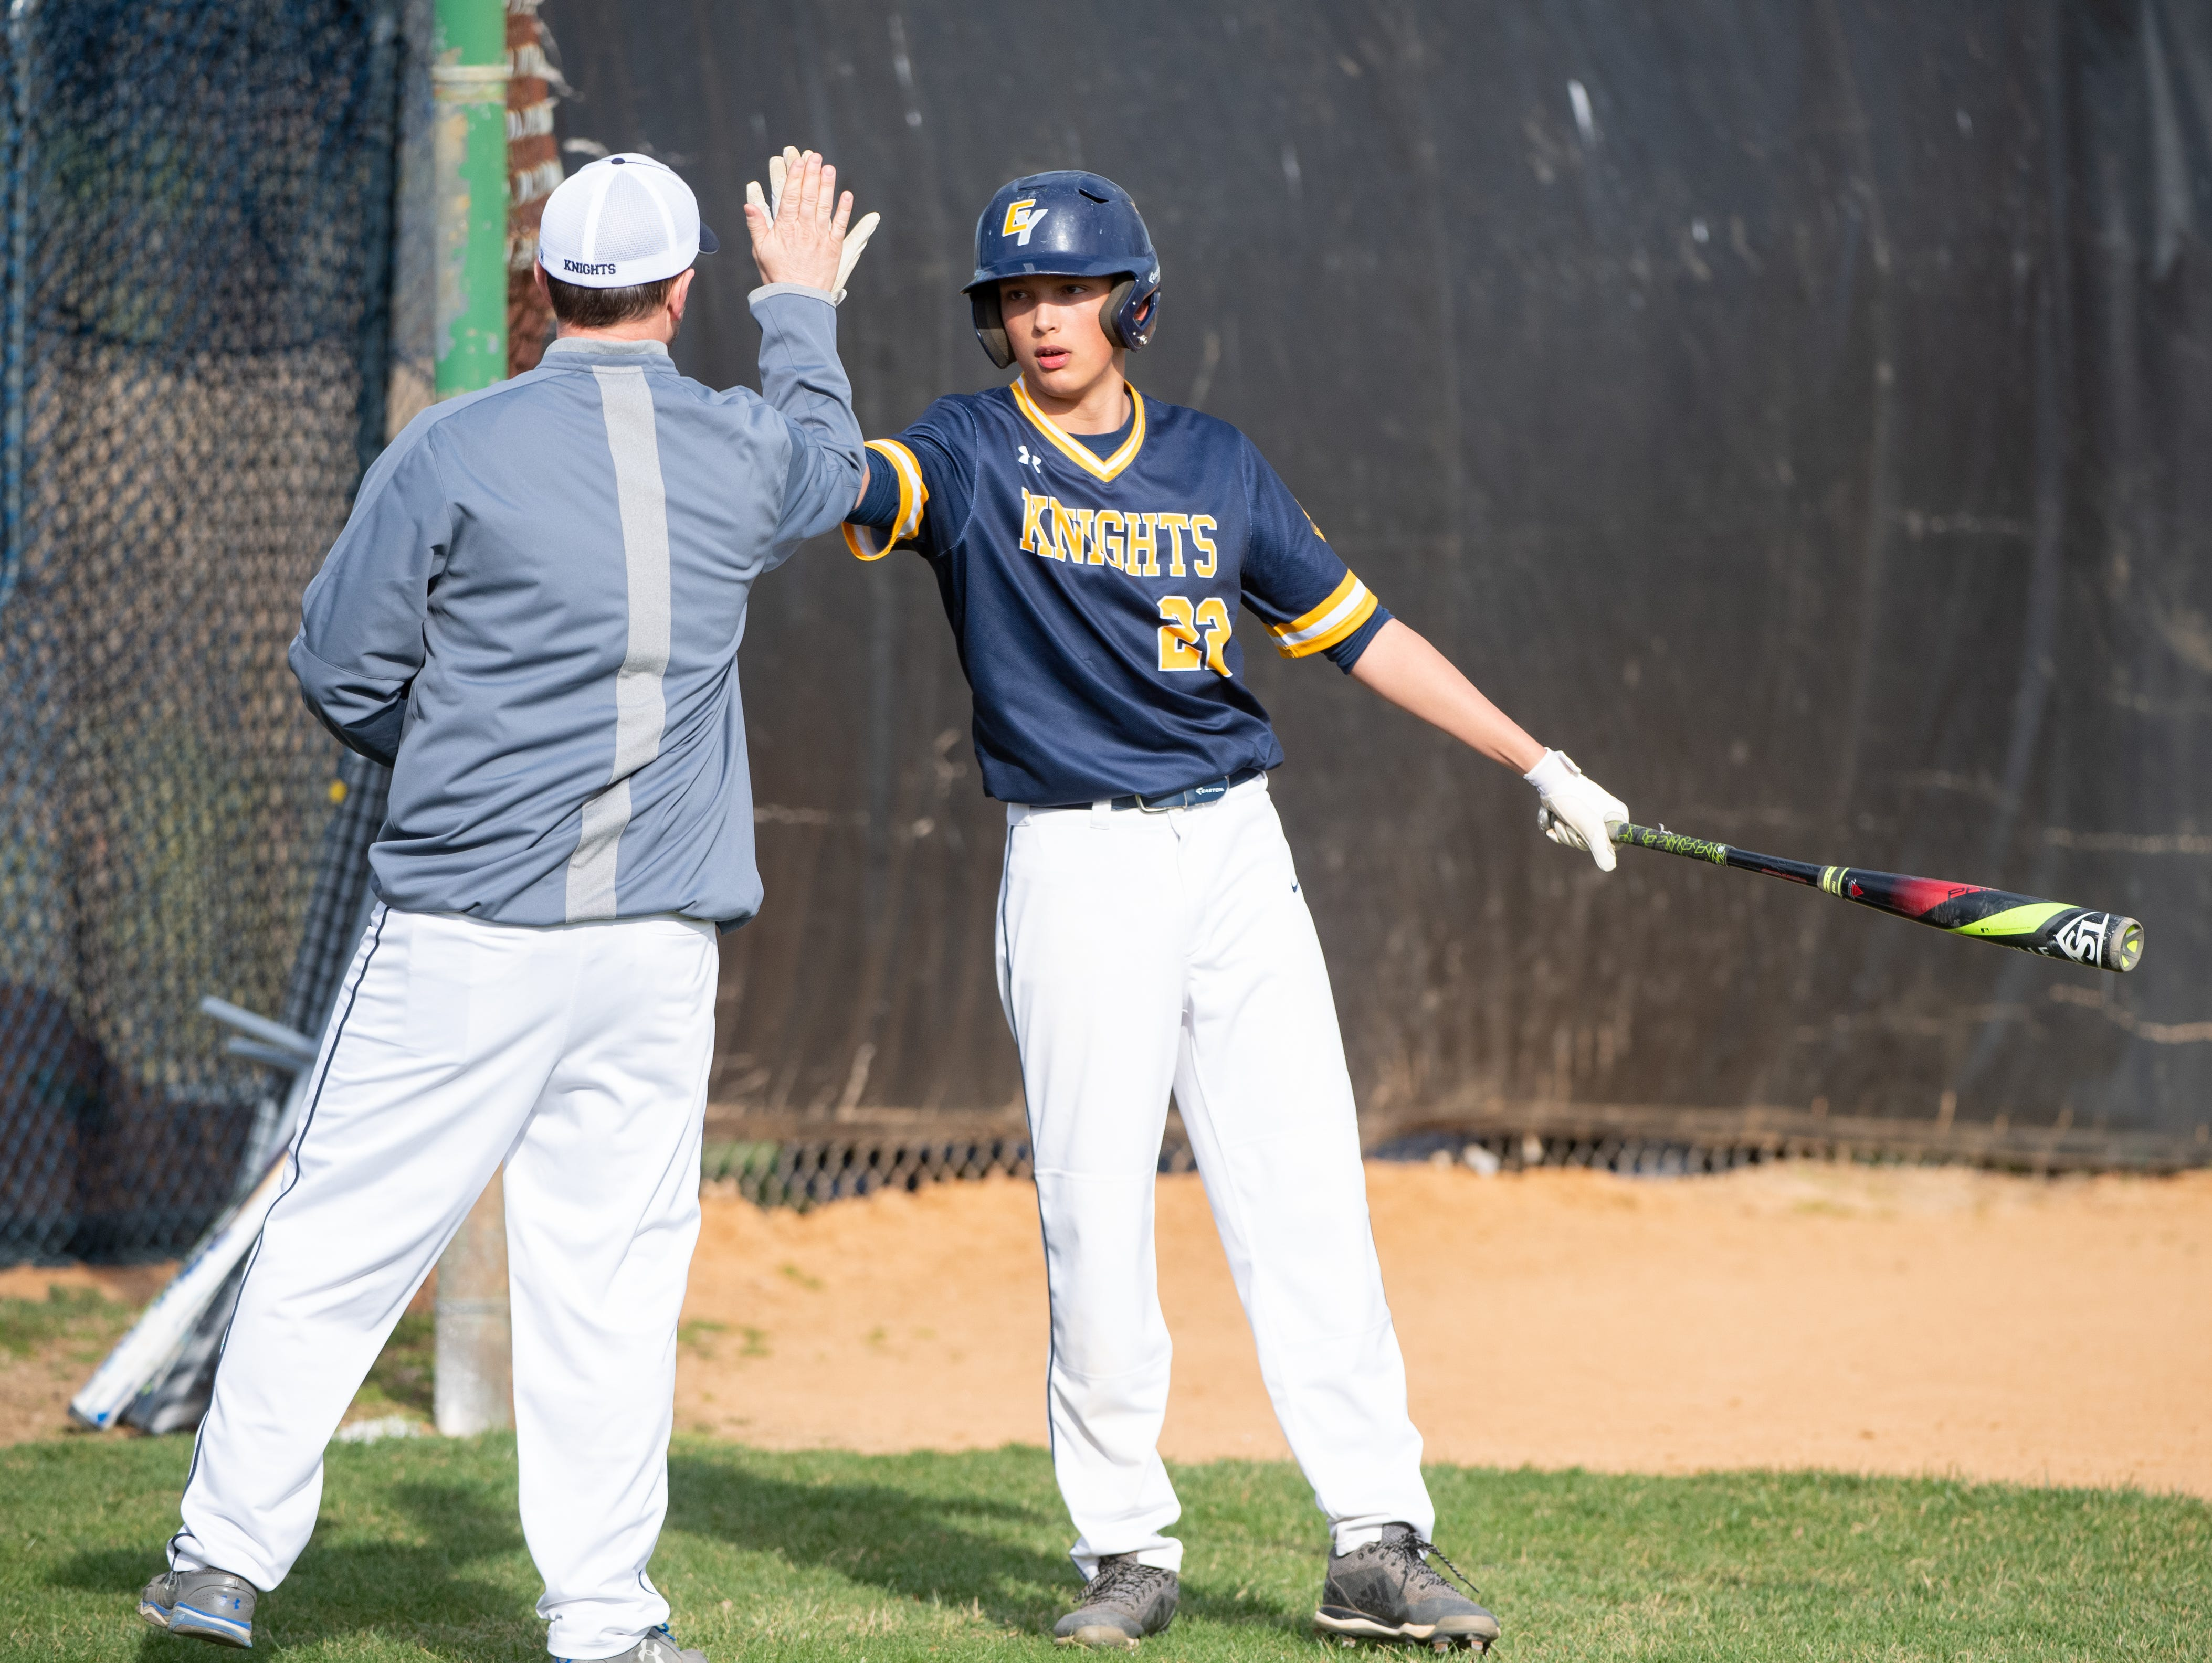 Justin Ranker (22) high-fives his coach during the baseball game between Eastern York and Kennard-Dale, April 10, 2019 at Eastern York High School. The Golden Knights defeated the Rams 8 to 1.